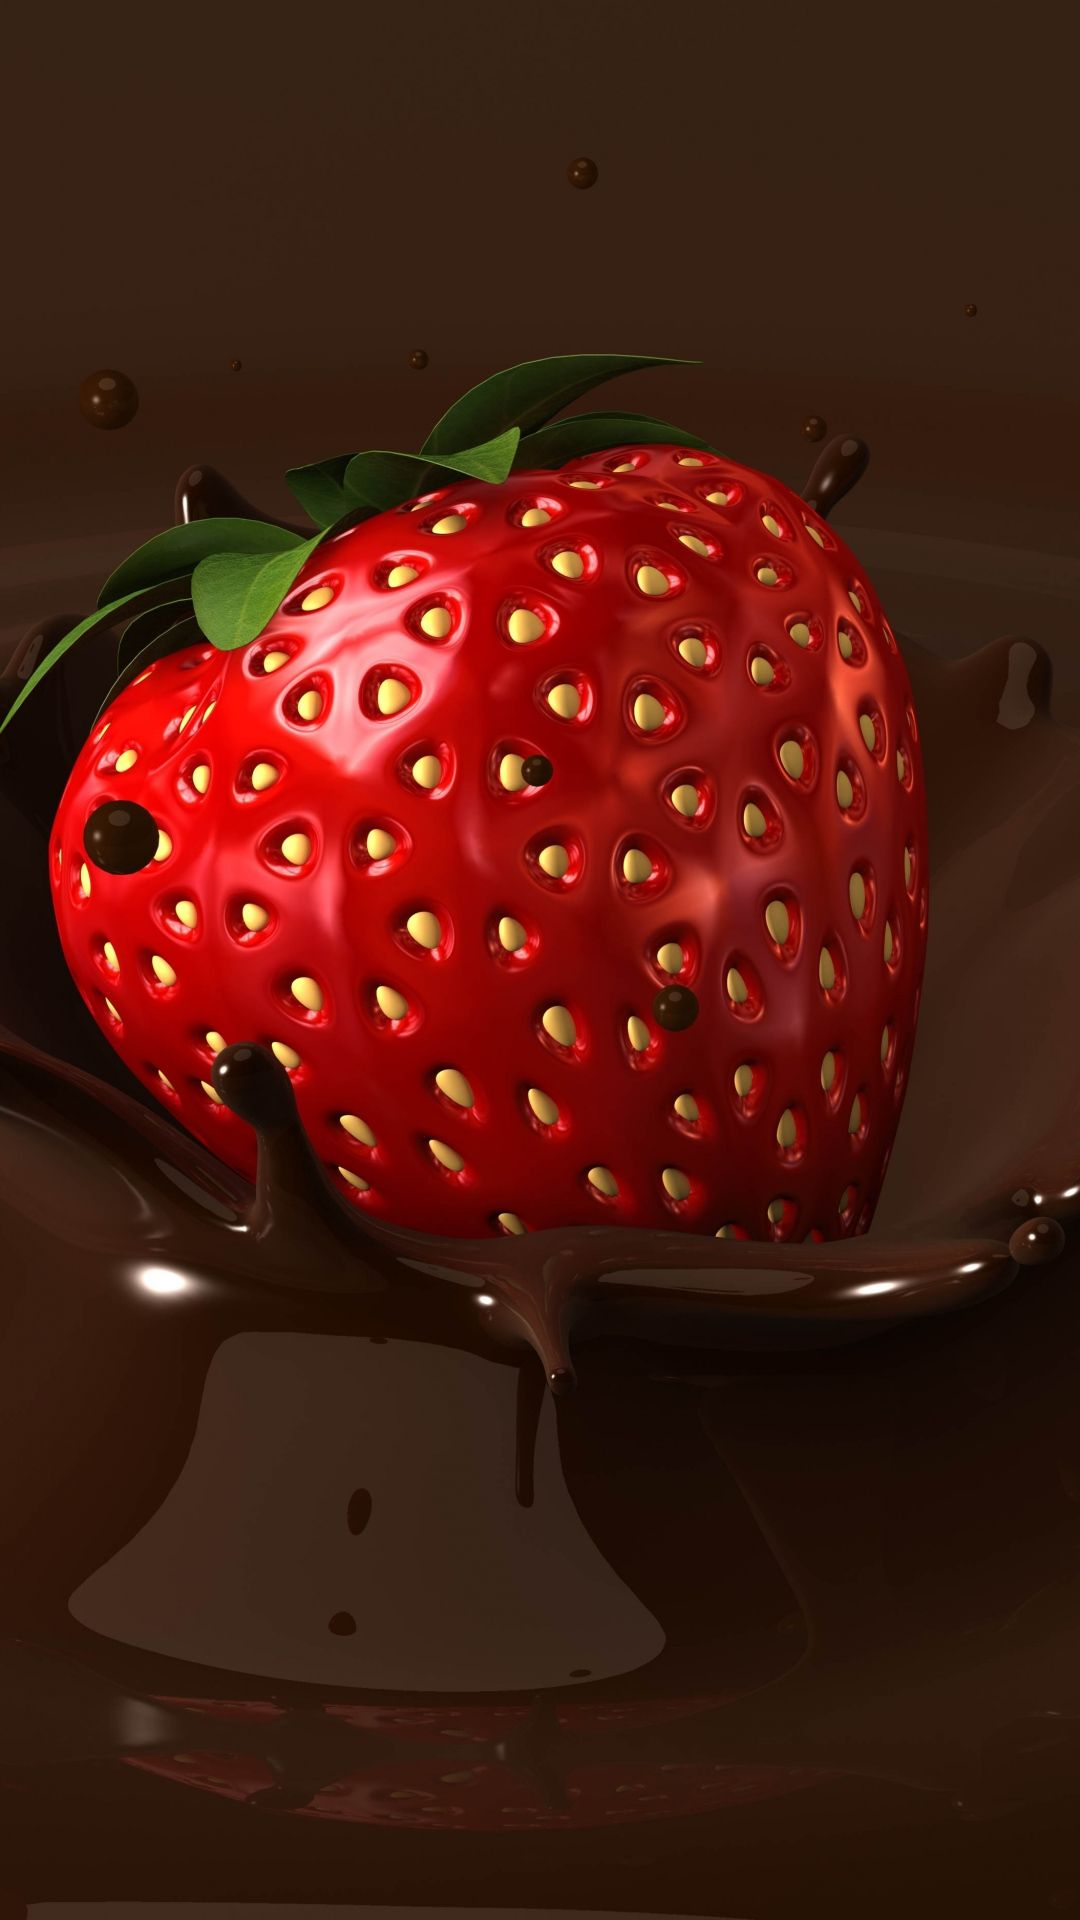 TAP AND GET THE FREE APP Food Strawberry In Chocolate Brown Red